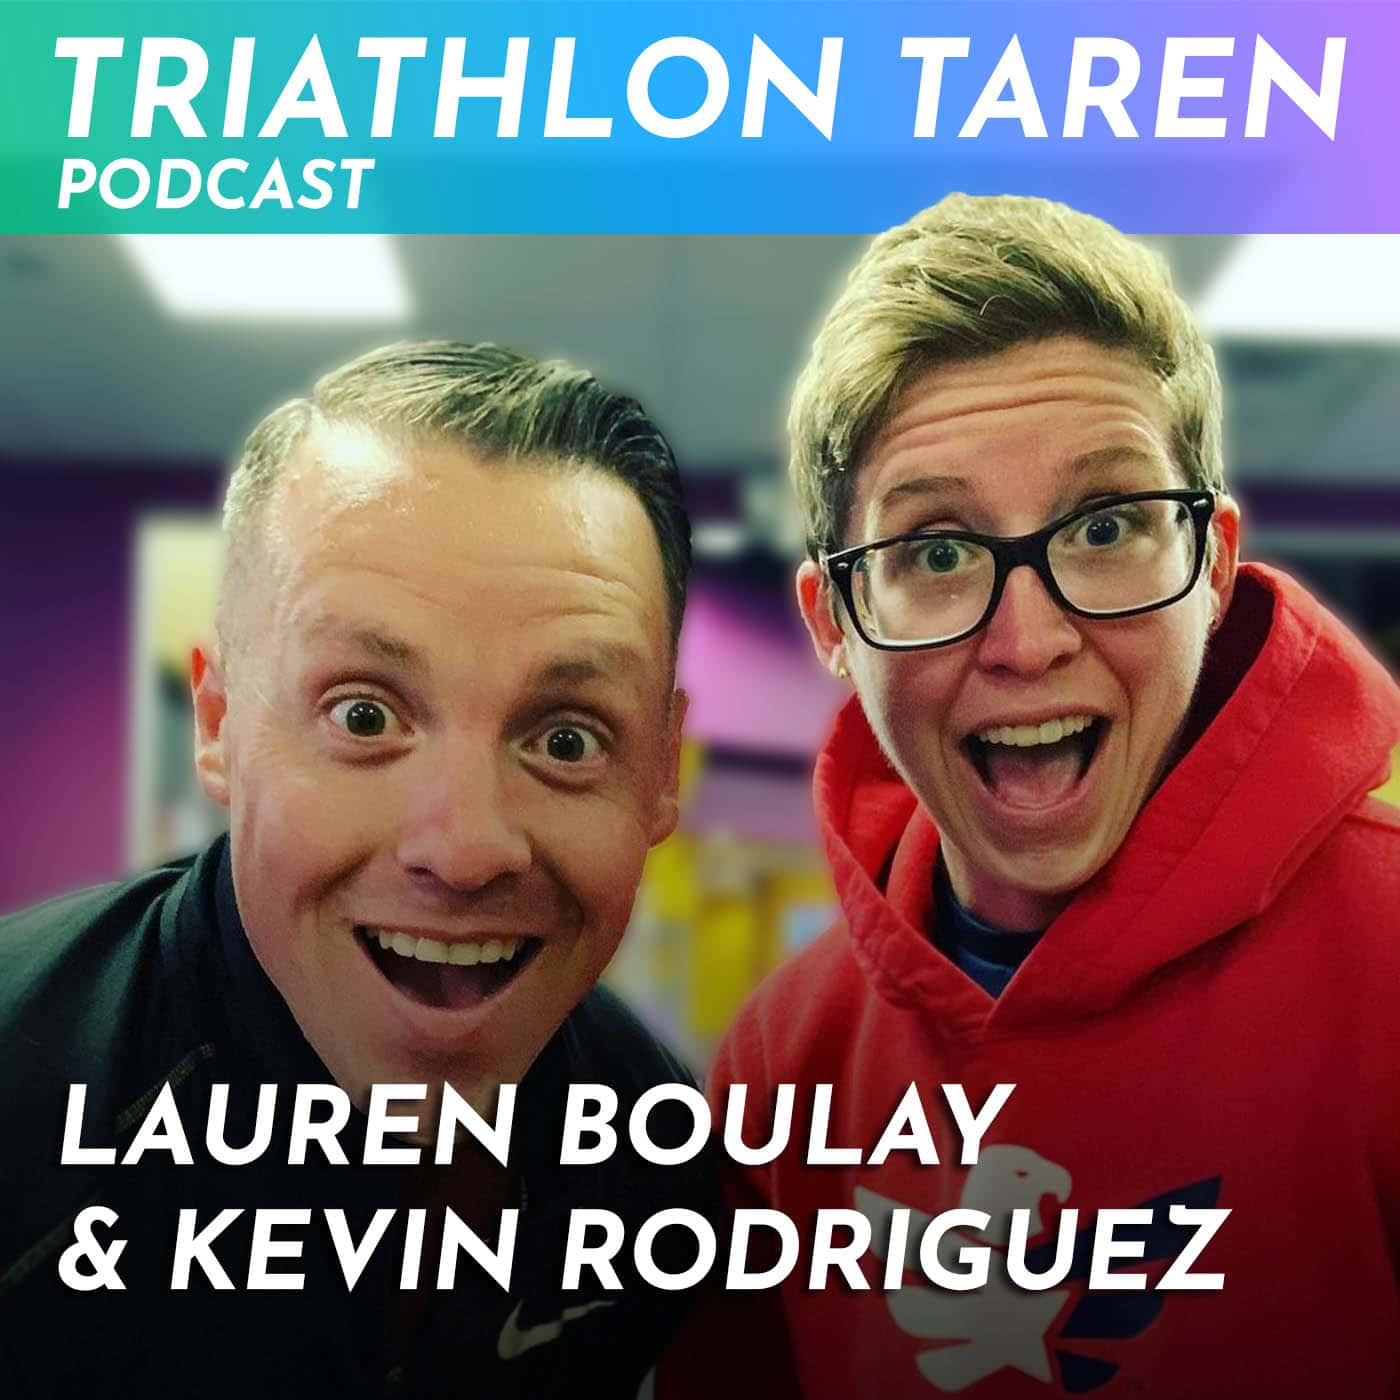 Create your own race with Kevin Rodriguez and Lauren Boulay